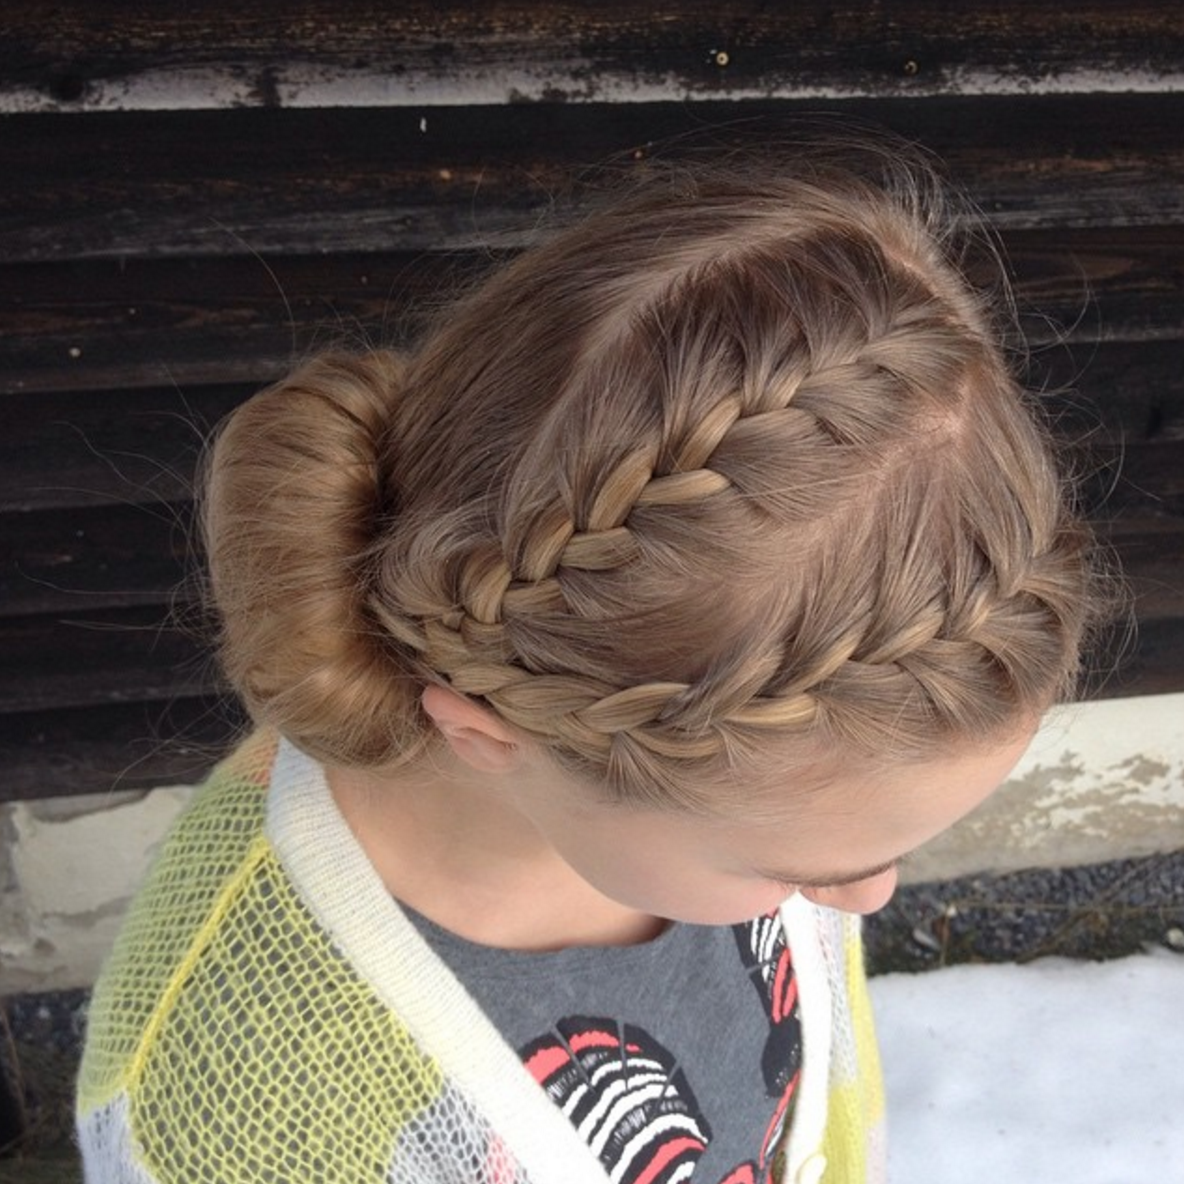 12 Pretty Easy School Hairstyles For Girls The Organised